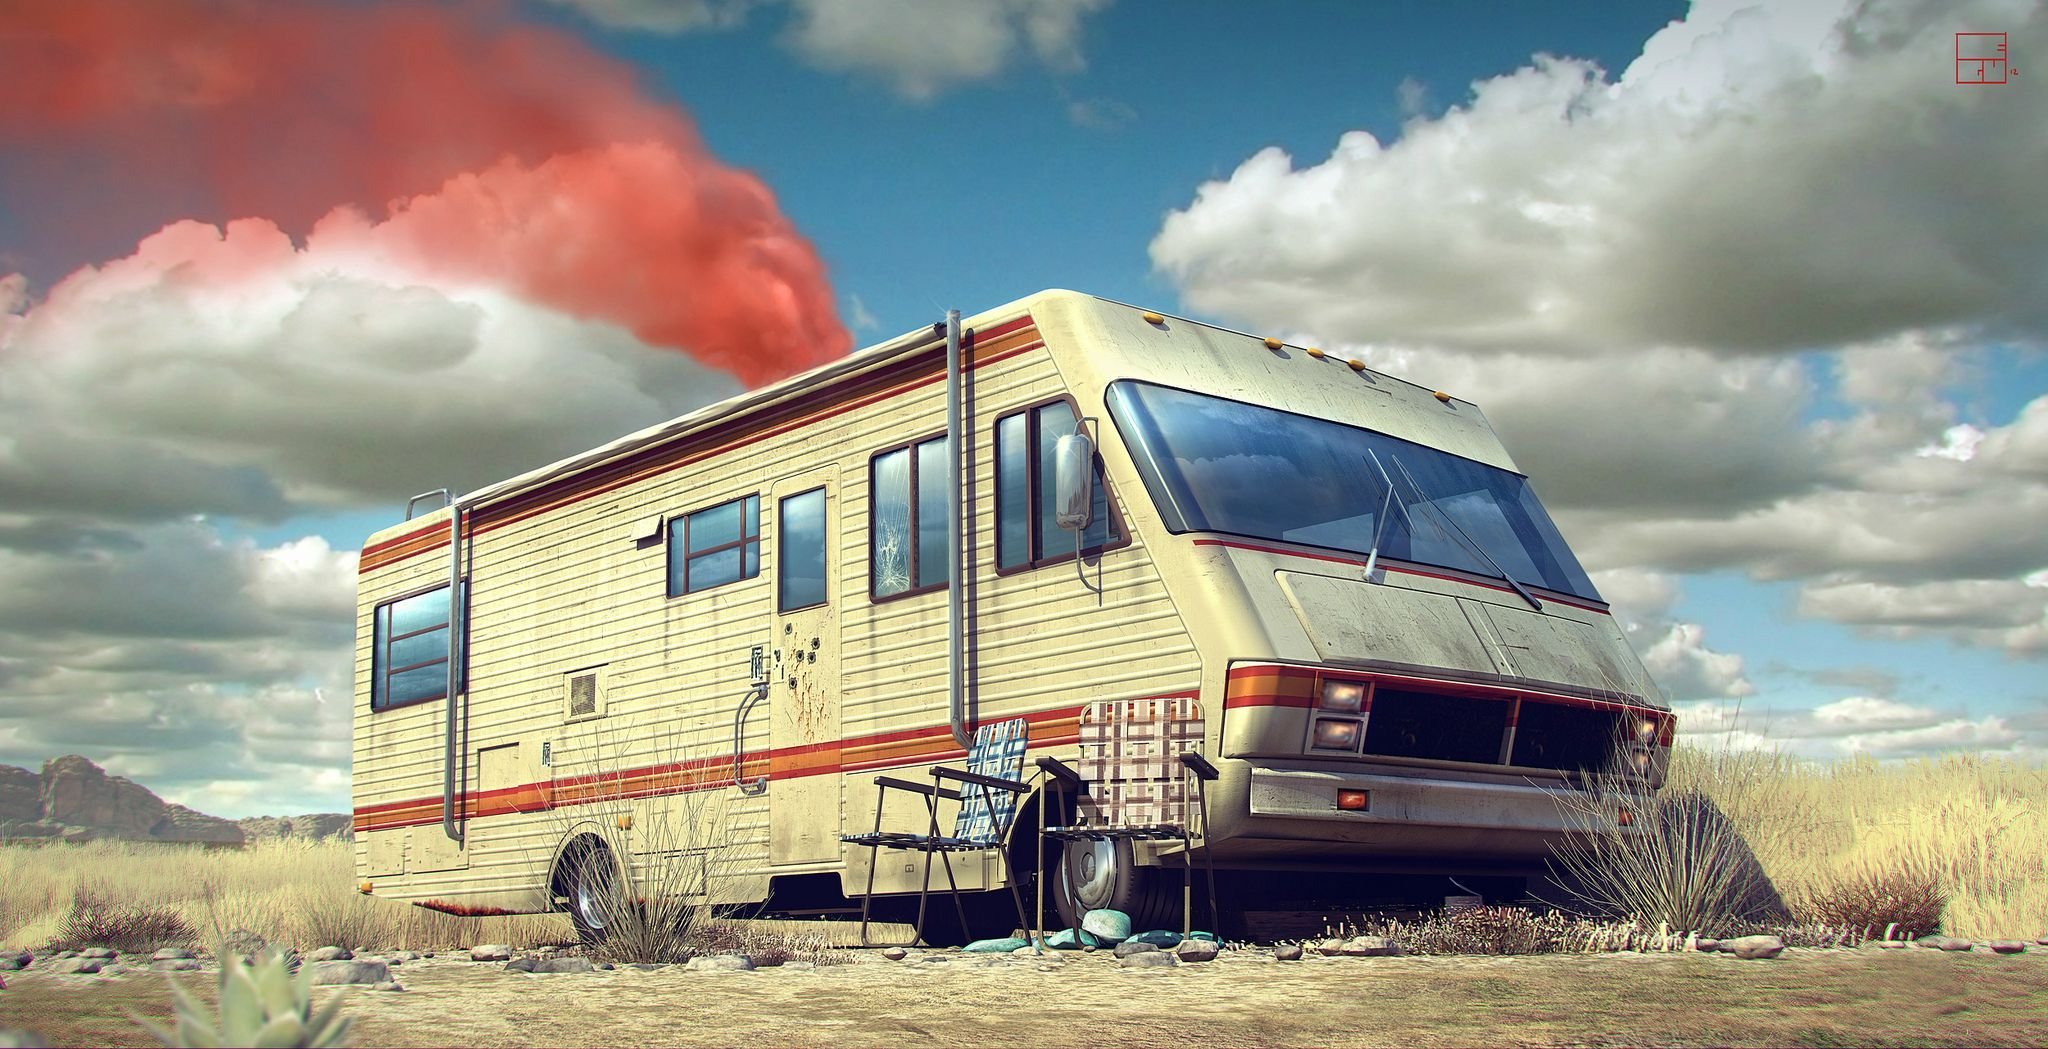 Breaking Bad HD Wallpapers  Breaking Bad  Pinterest  Dean o